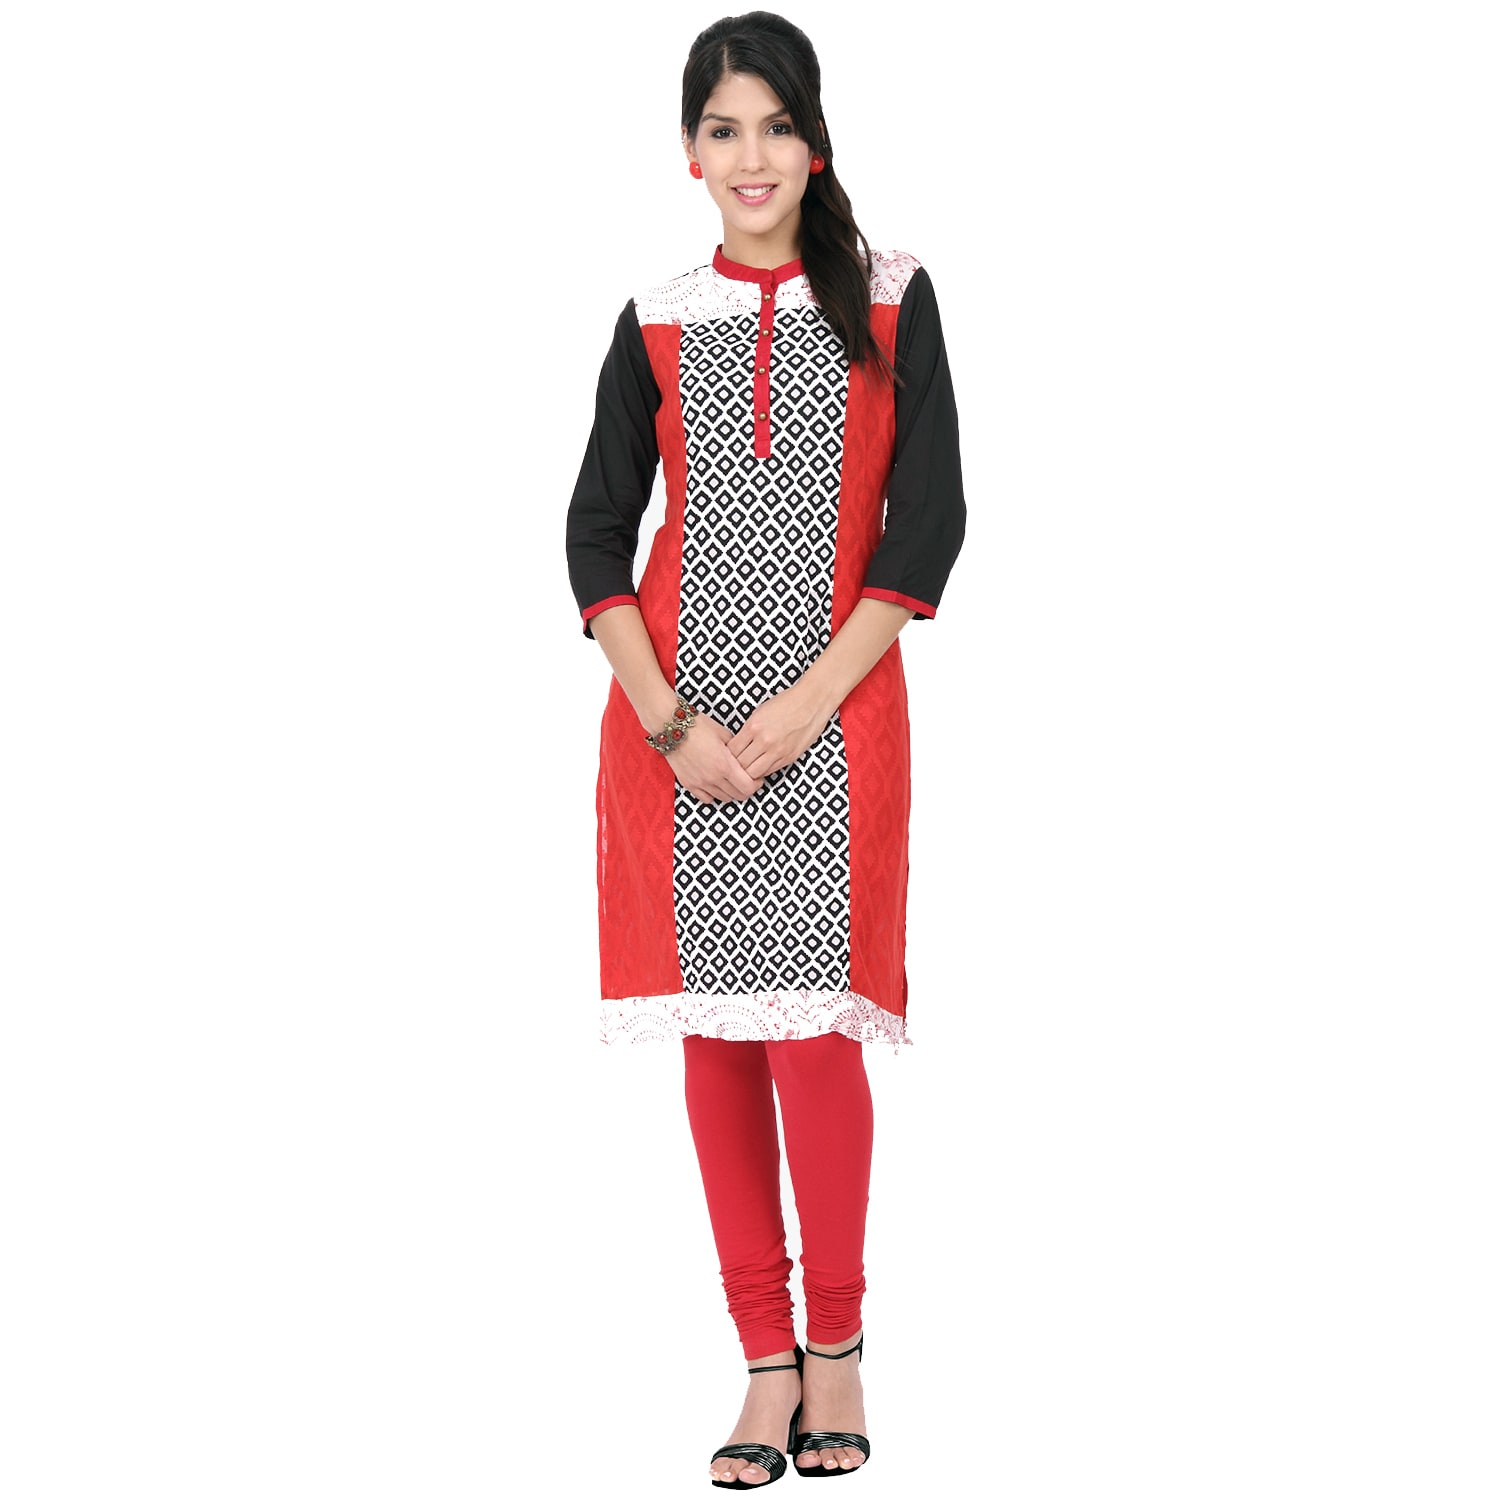 4484f91353a Shop Handmade In-Sattva Ethnicity Women's Indian Color Block Diamond Print  Kurta Tunic (India) - On Sale - Free Shipping On Orders Over $45 - Overstock  - ...